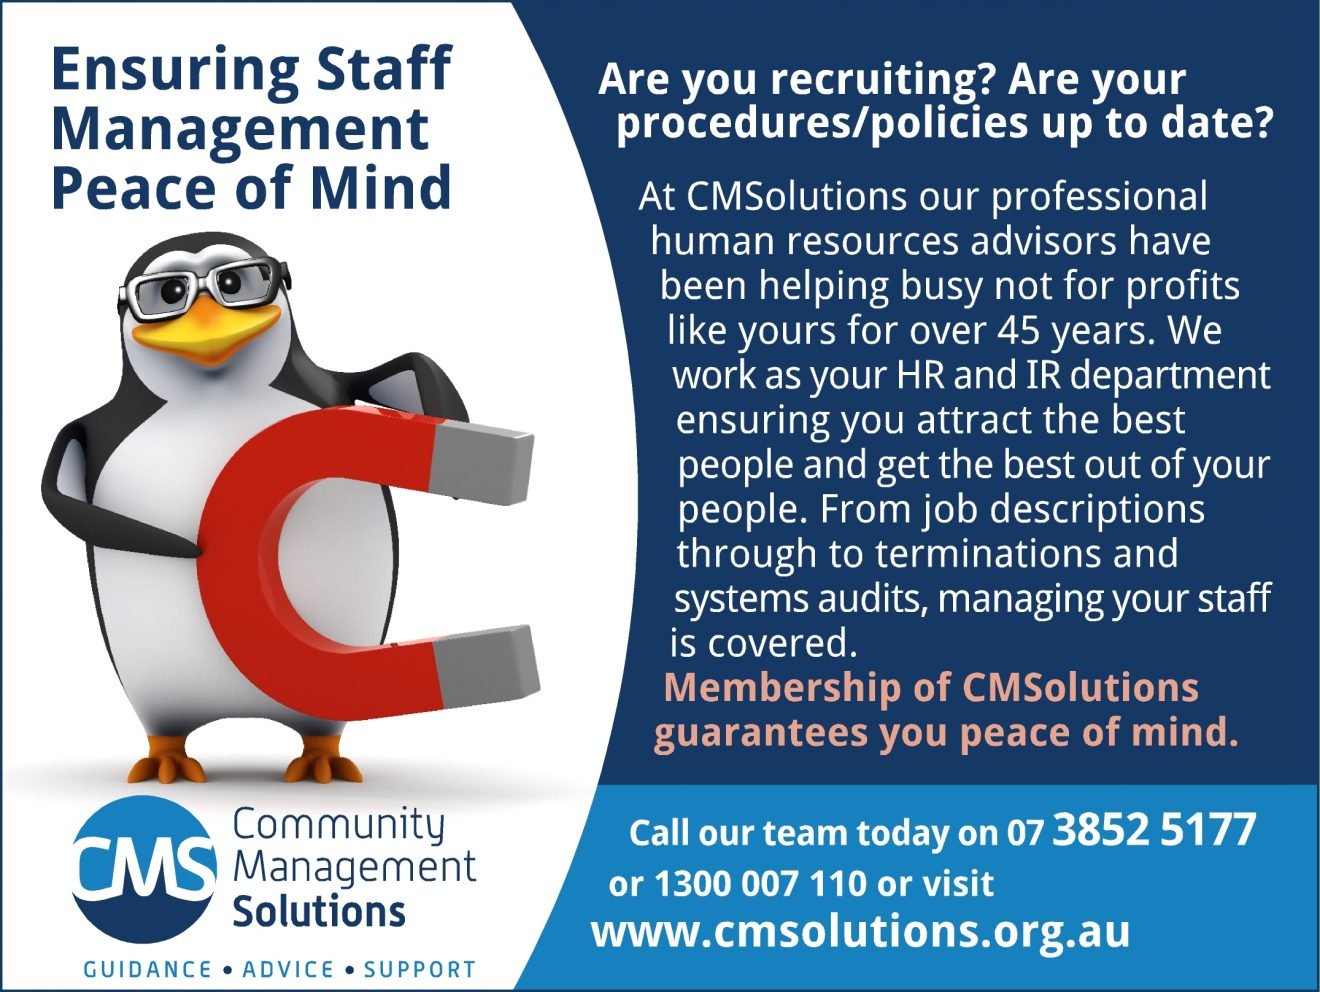 cmsolutions-ad2